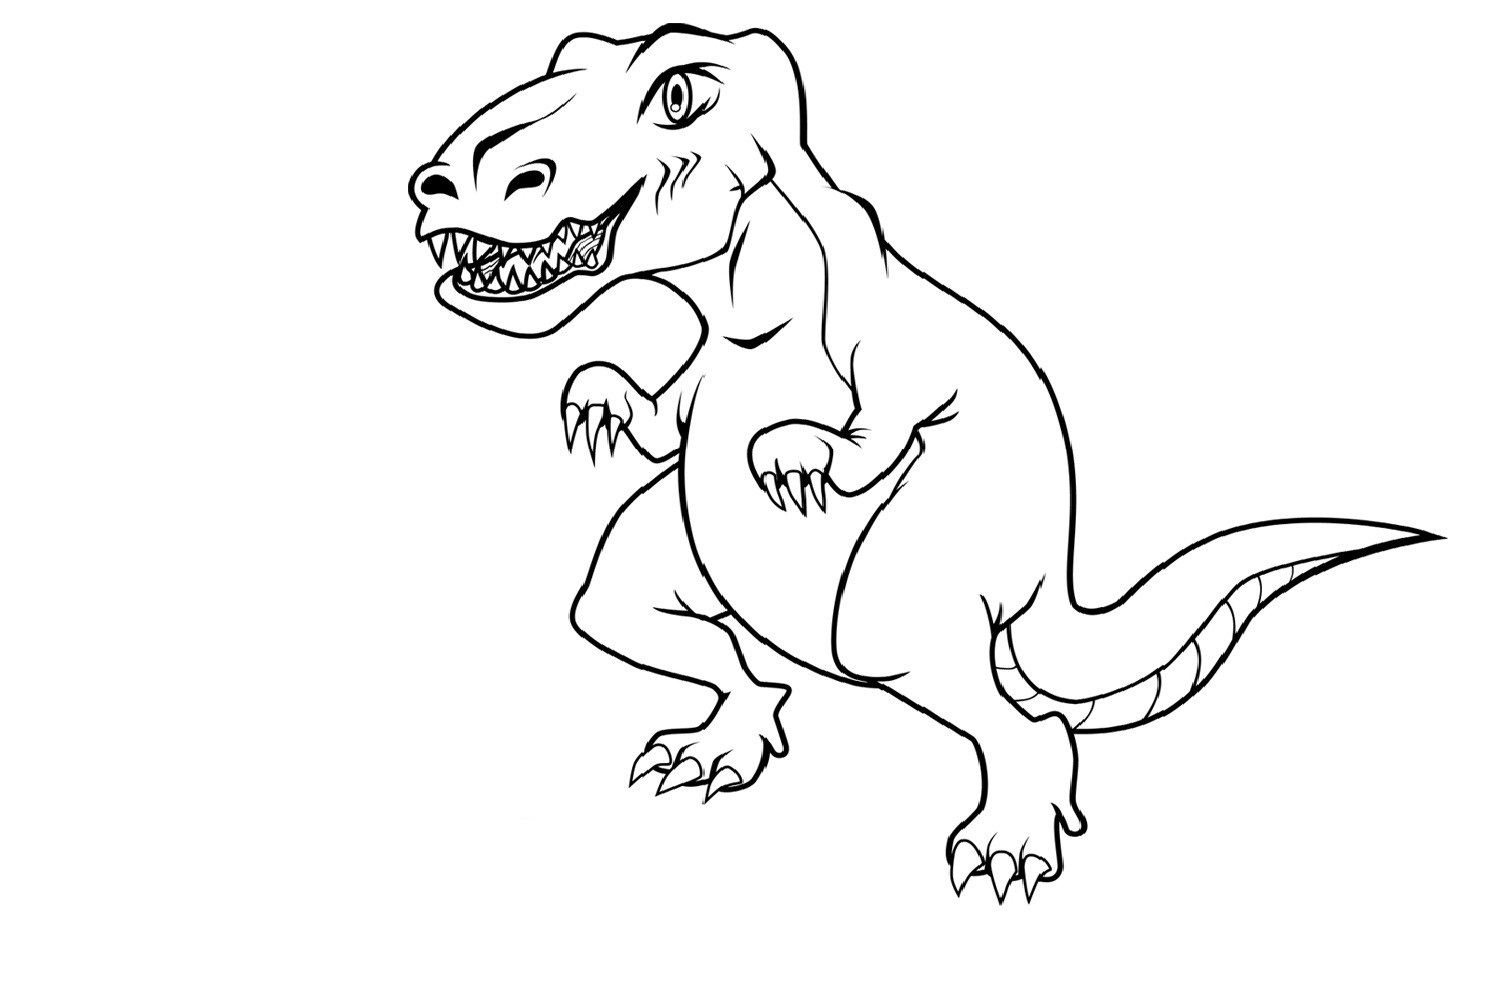 free printable dinosaur coloring pages for kids - Free Coloring Page Printables